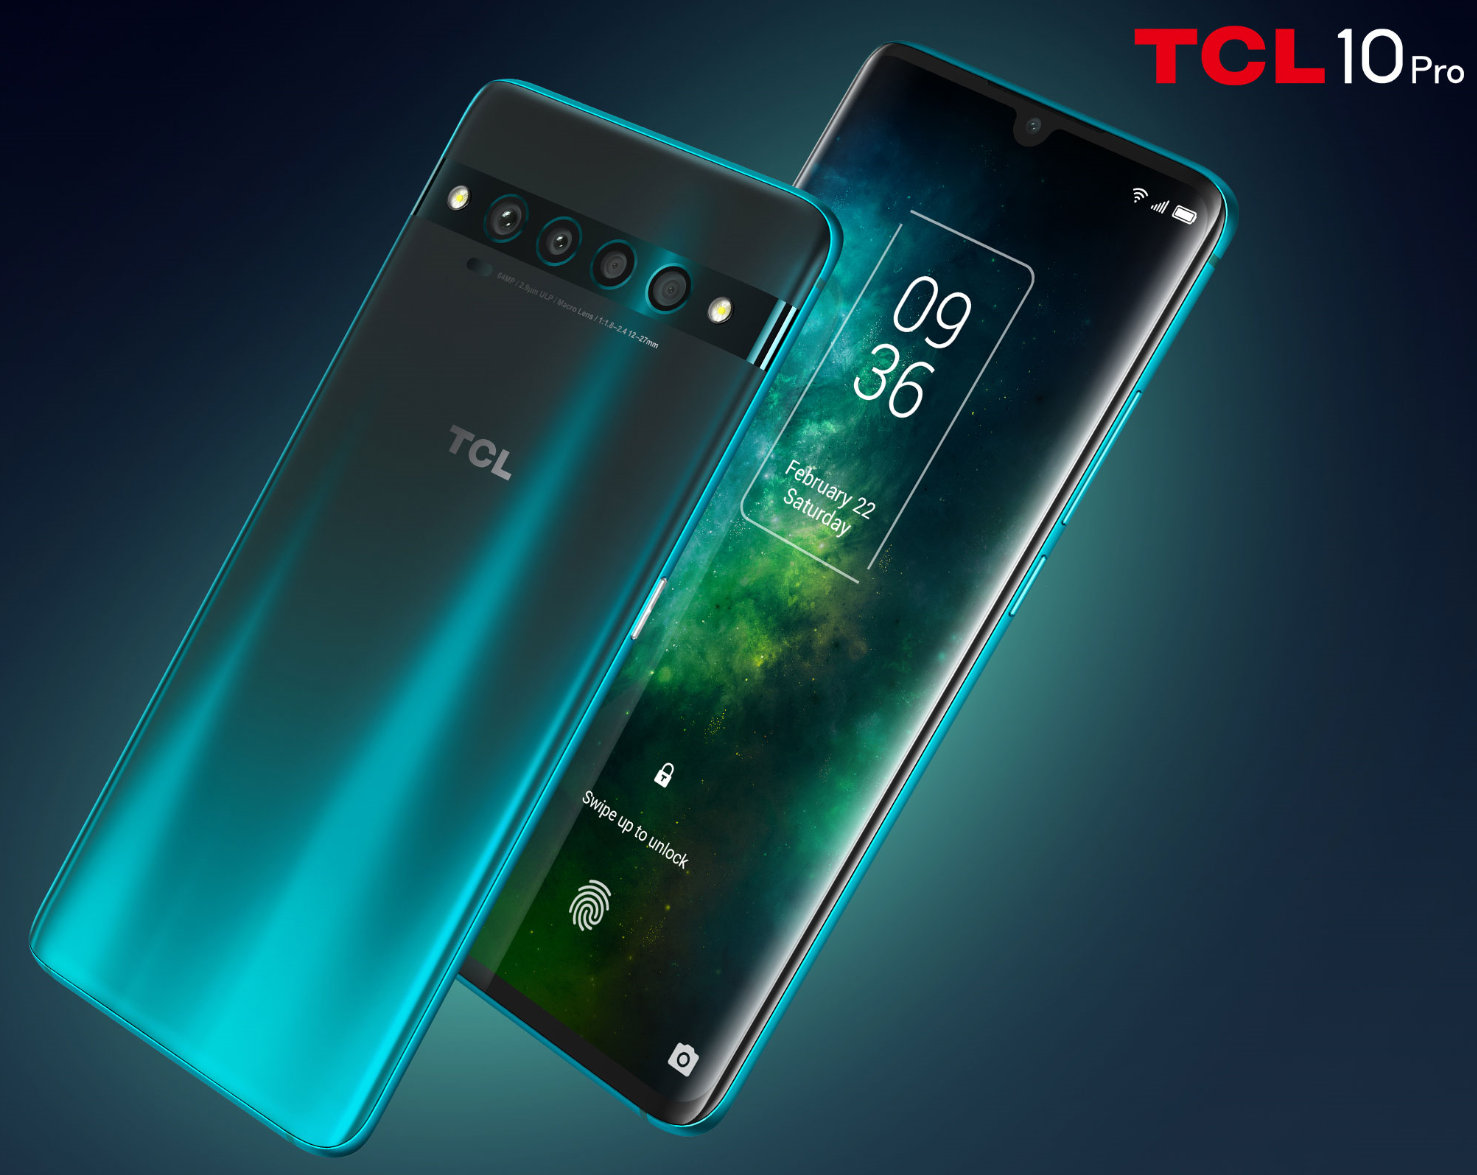 TCL 10